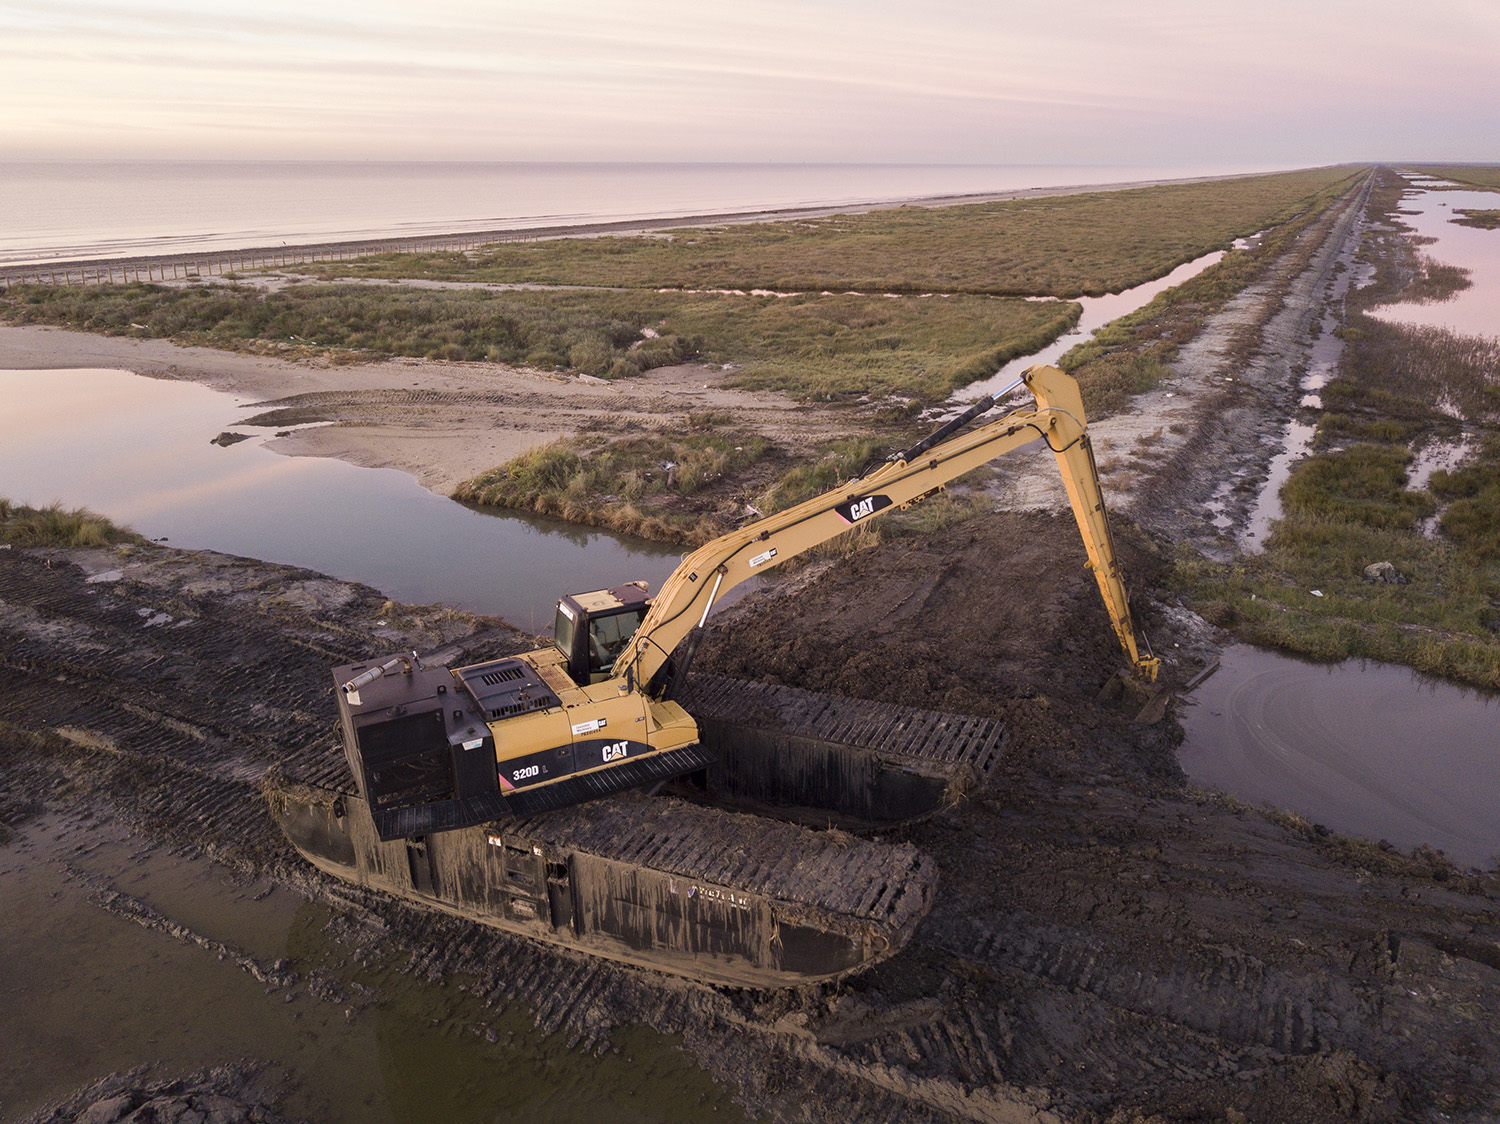 A digger can be seen near a clay berm being built behind the the dunes and beach at the McFaddin Wildlife Refuge near Port Arthur on Wednesday, Dec. 13, 2017.